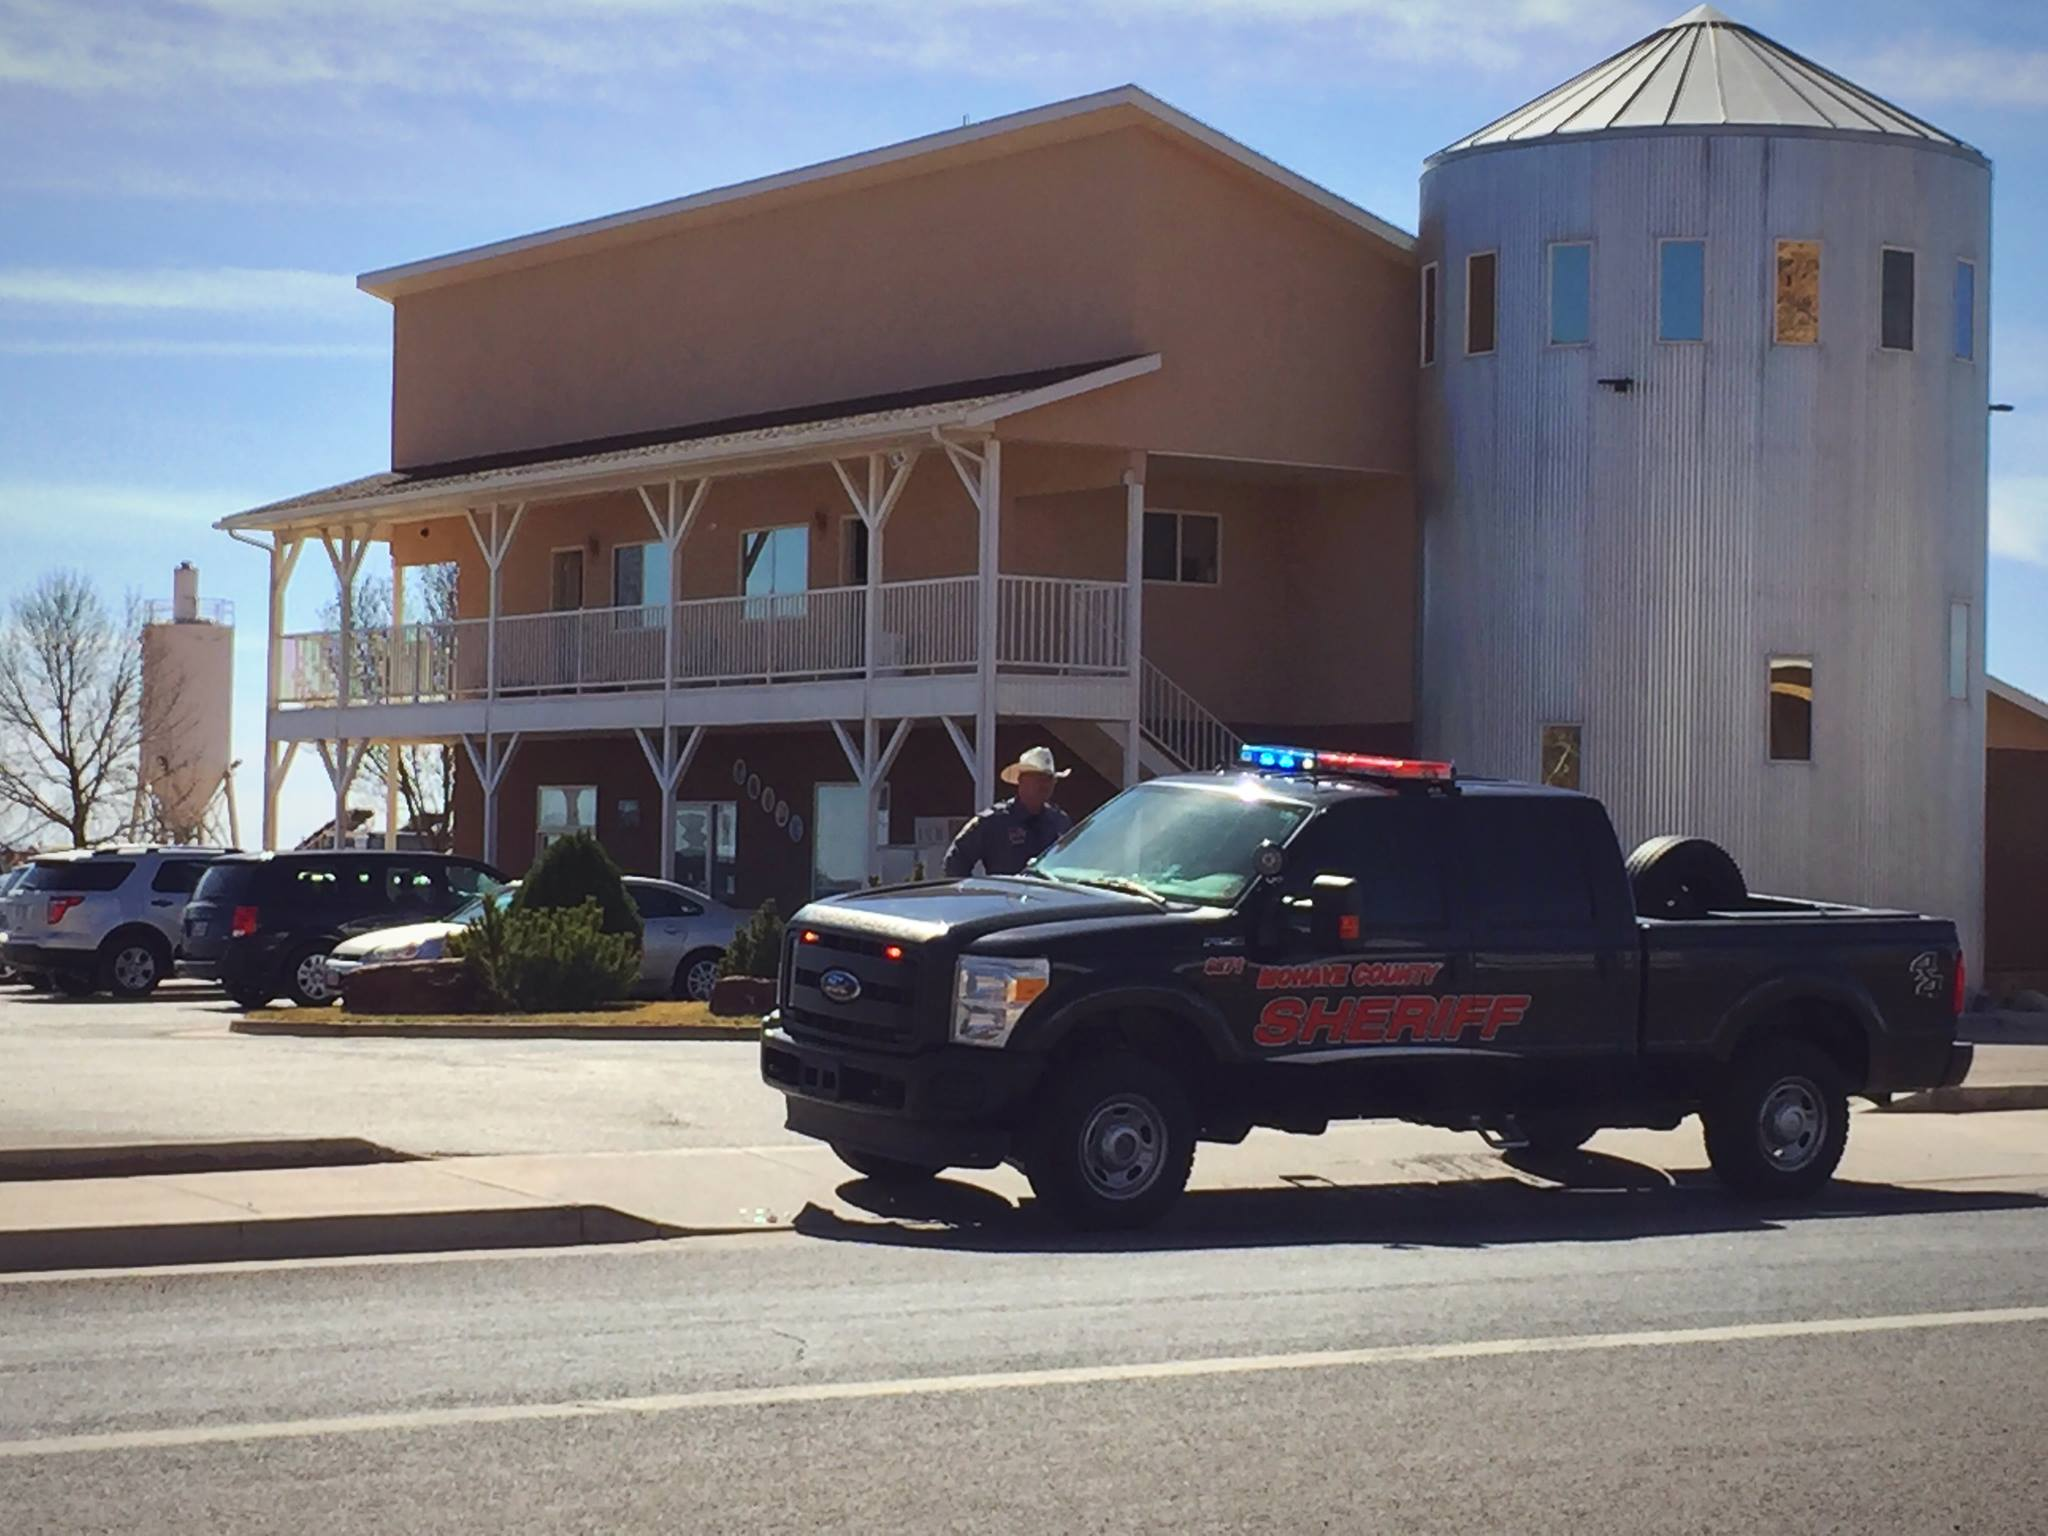 Multi-agency law enforcement converge on the communities of Hildale, Utah, and Colorado City, Arizona, in connection with a federal indictment naming 11 leaders of the Fundamentalist Church of Jesus Christ of Latter Day Saints on conspiracy and money laundering charges, Feb. 23, 2016 | Photo by Kimberly Scott, St. George News